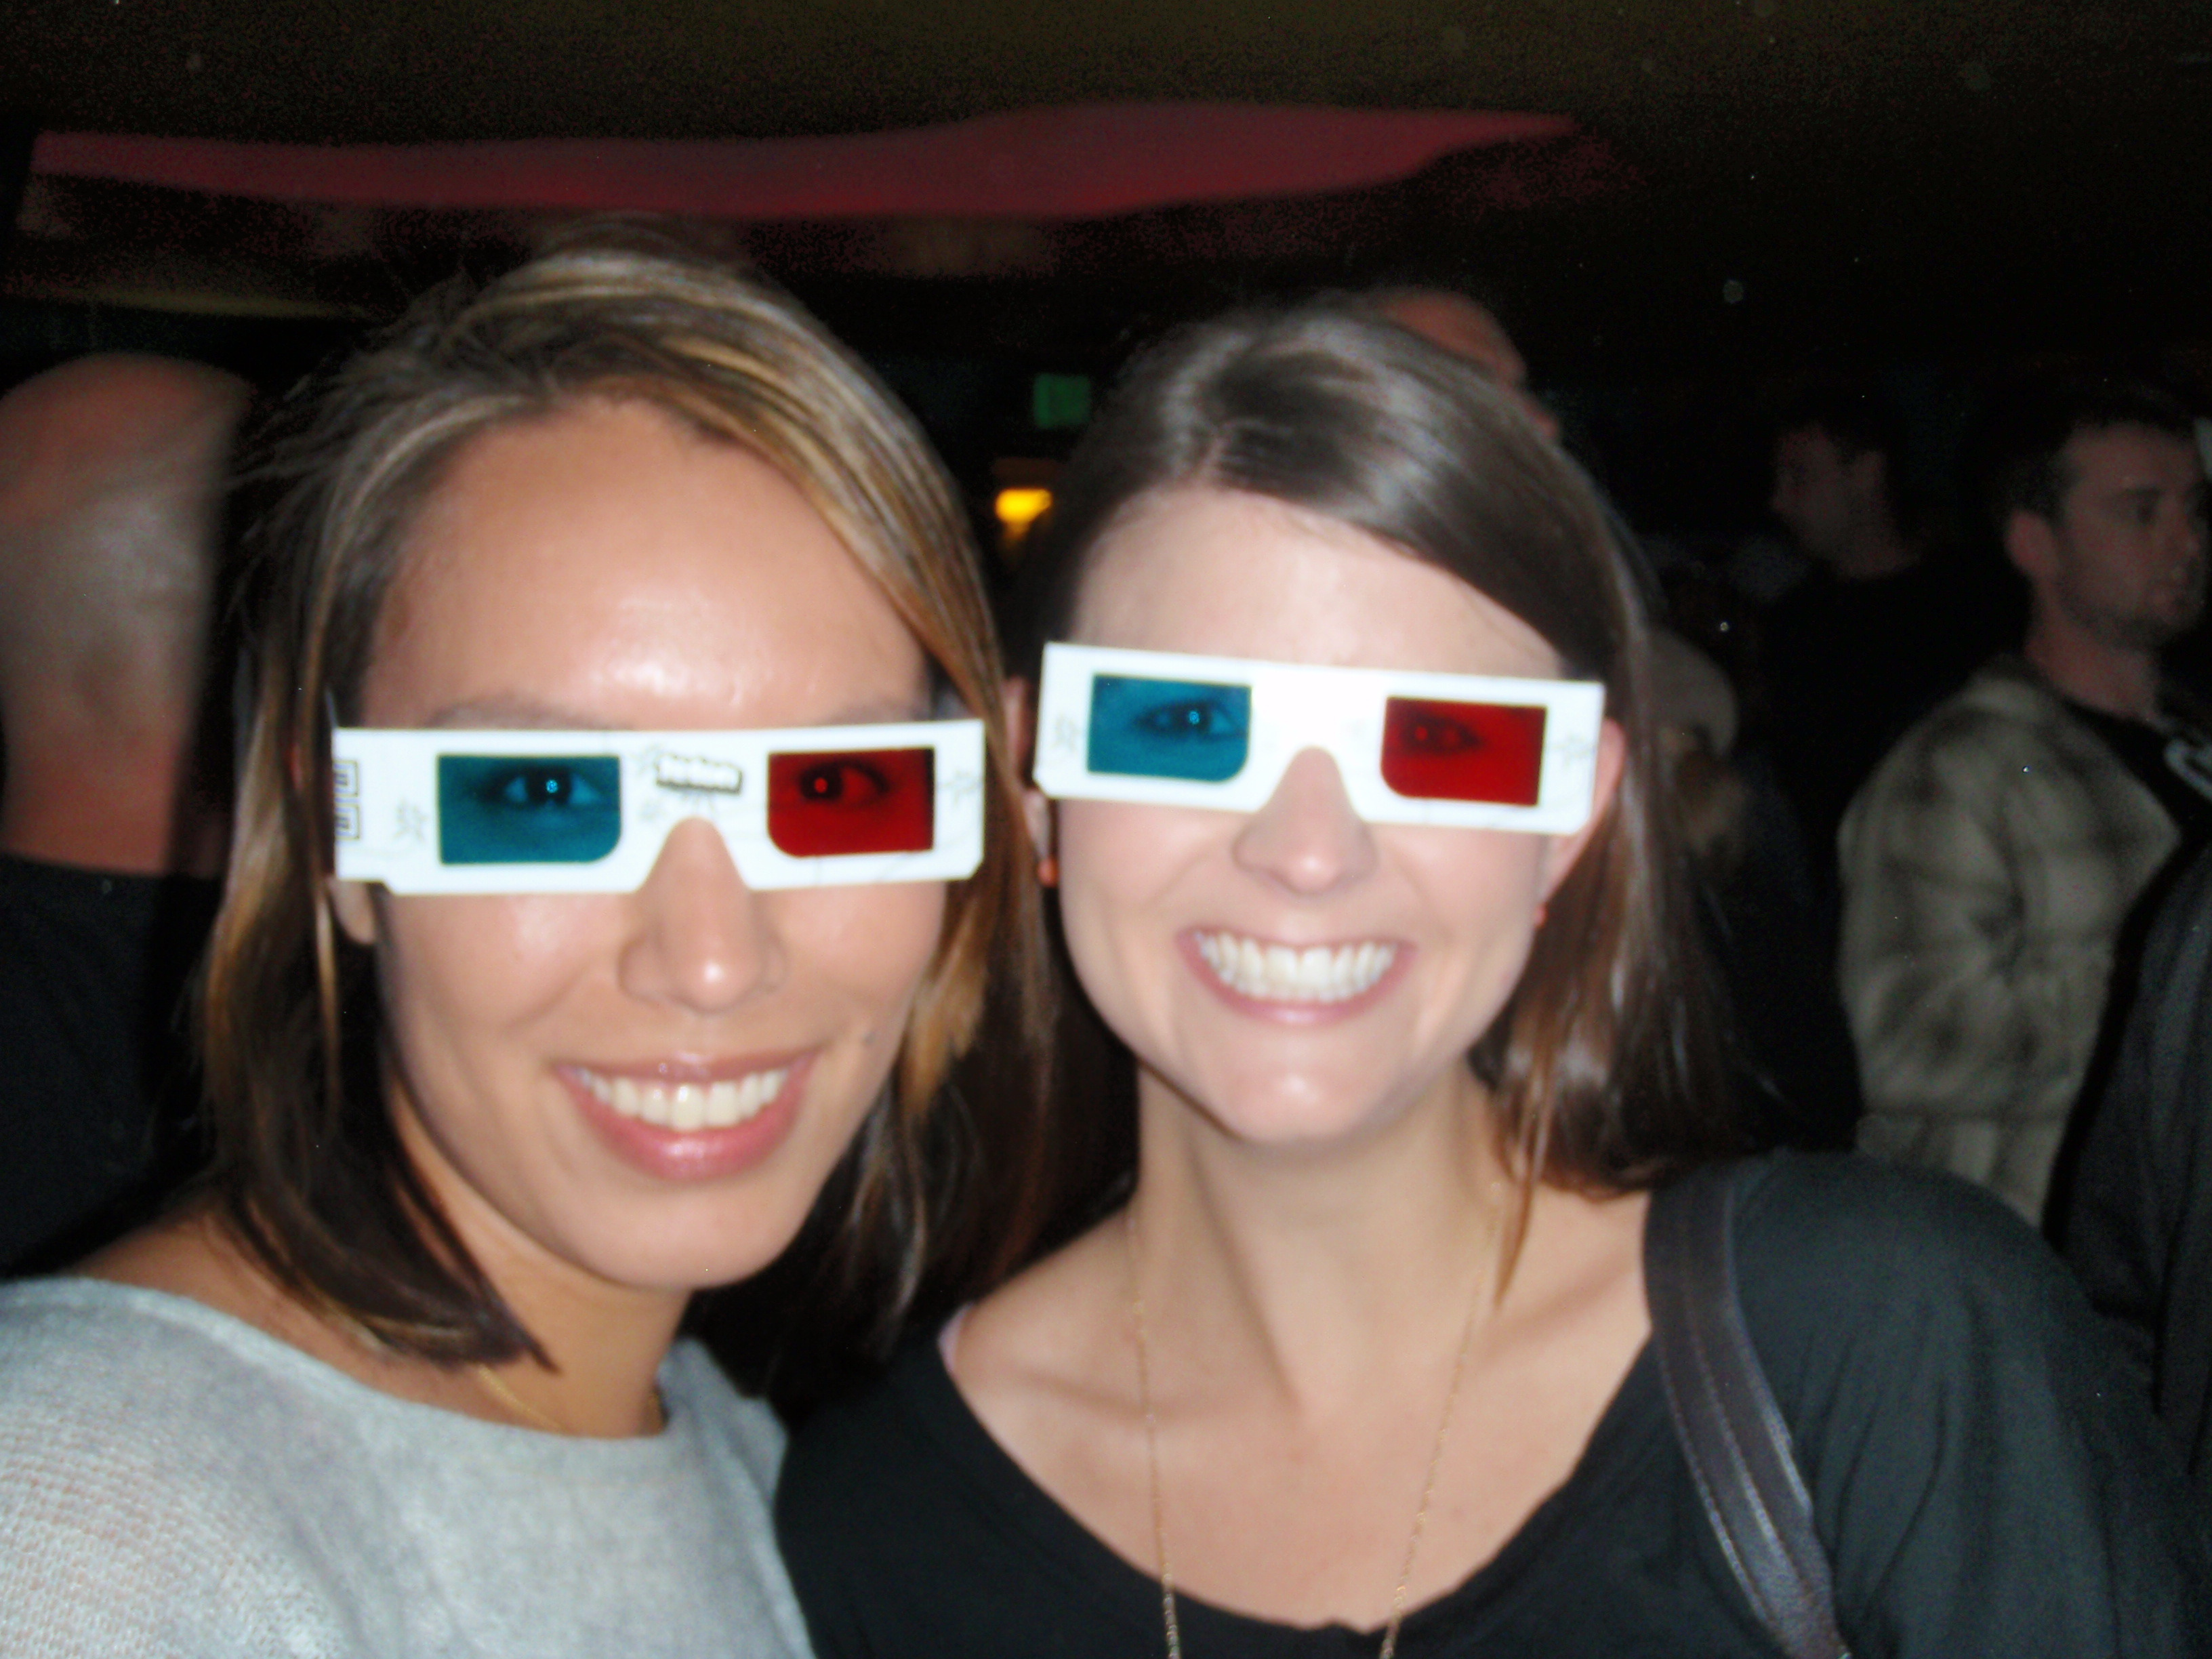 ready for some 3D